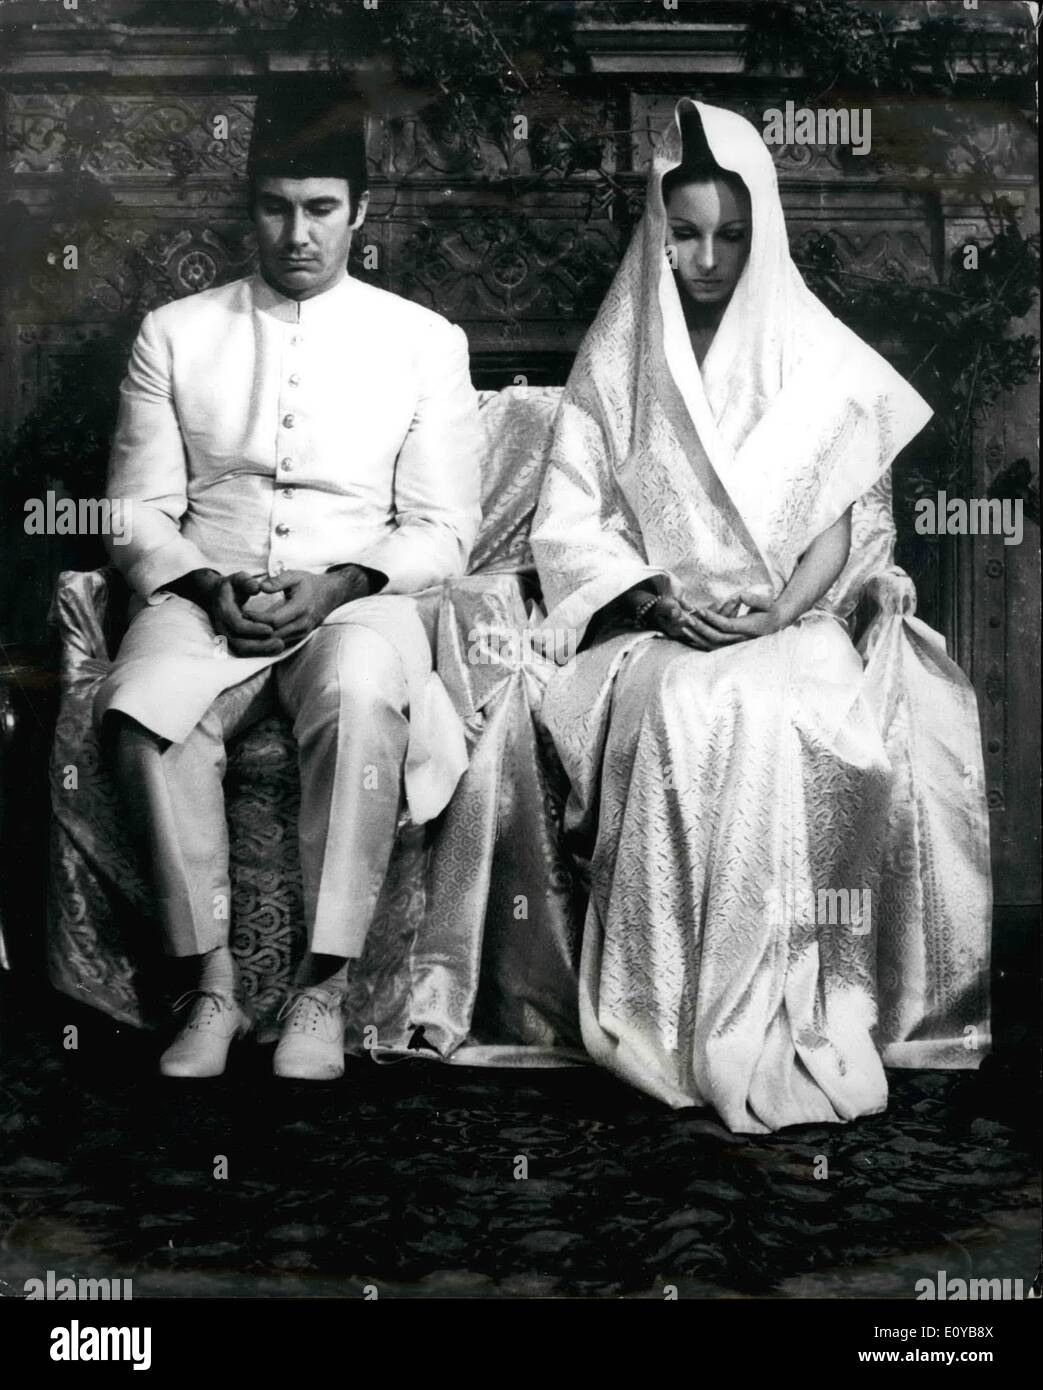 Oct. 10, 1969 - Aga Khan And Bride In Moslem Wedding. The Aga Khan, 32, and his bride, formerly Lady James Crichton-Sturat, 29, - Stock Image